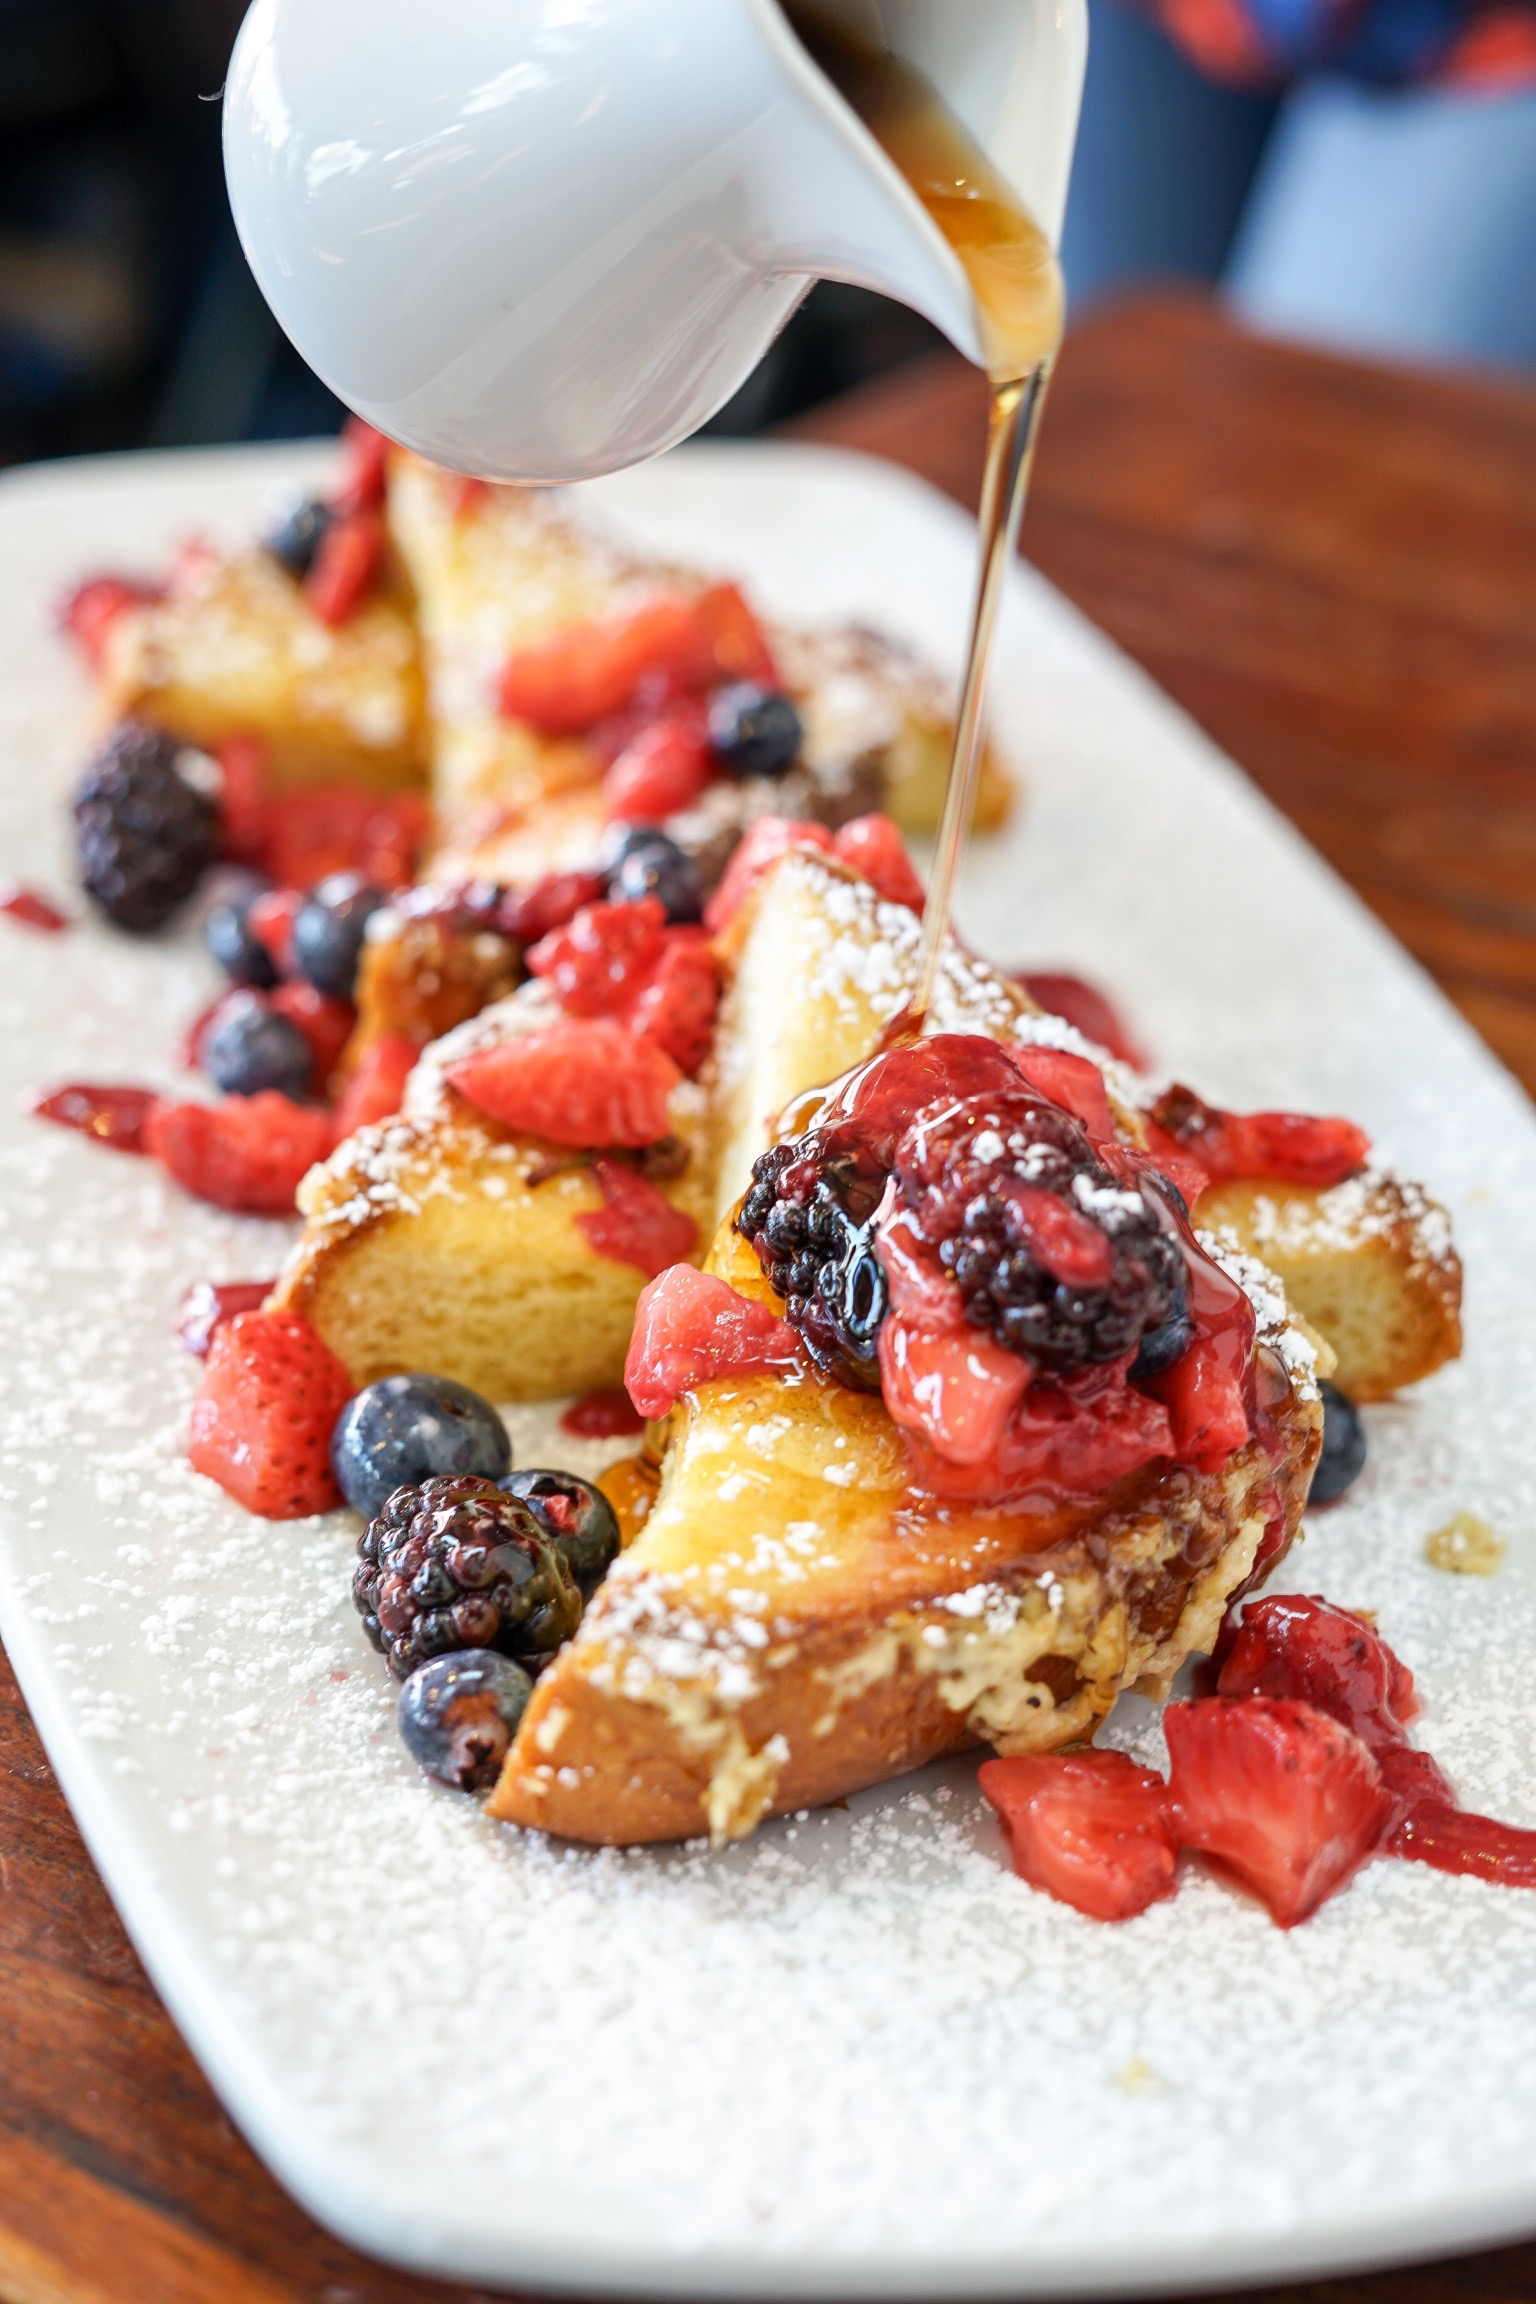 French Toast at The Rockefeller, Manhattan Beach, CA